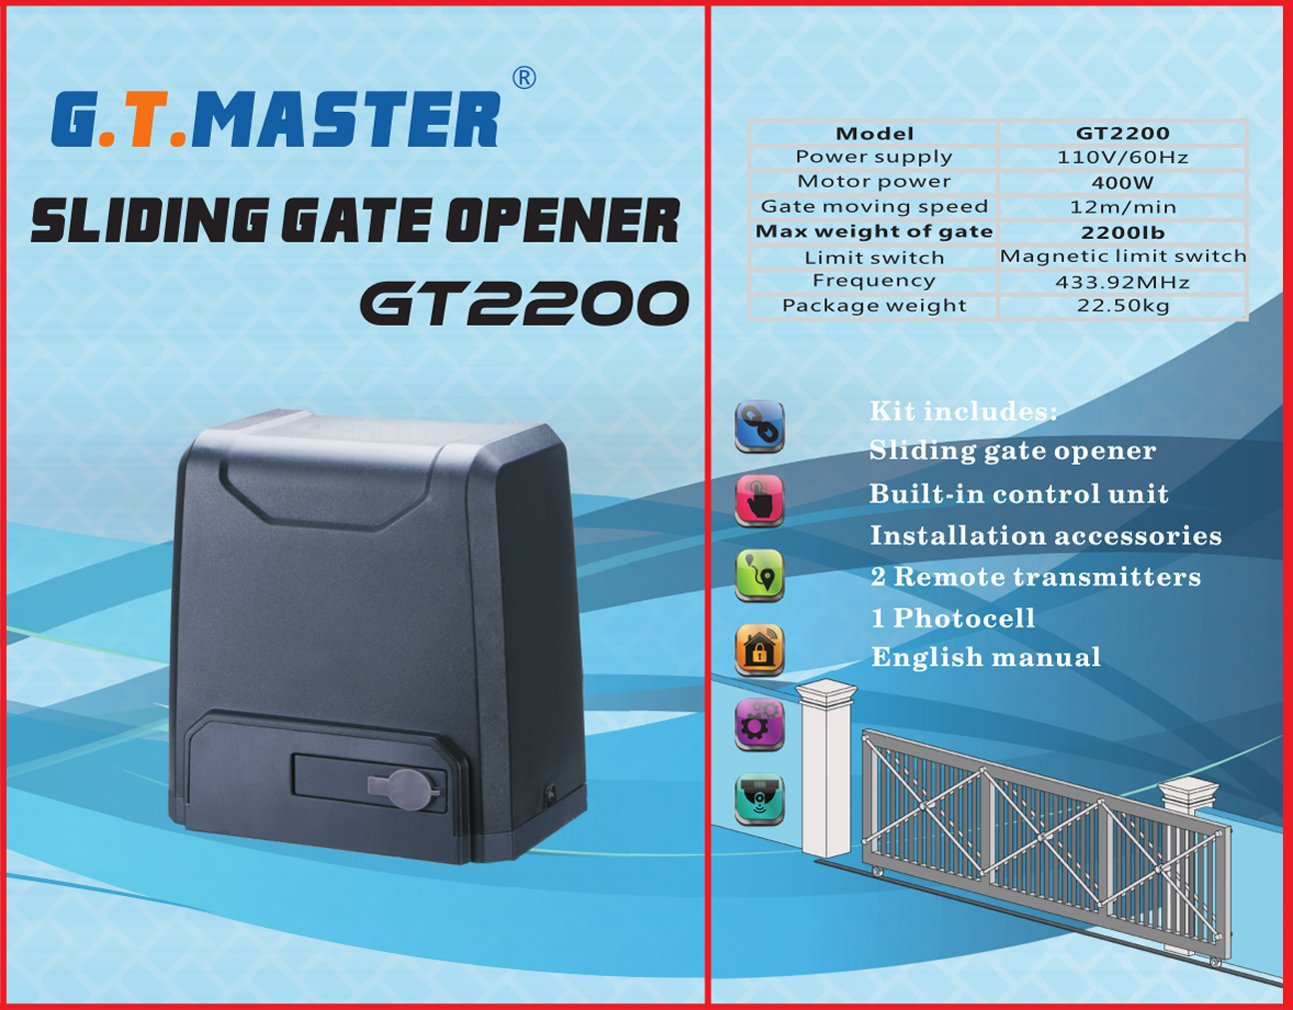 Gtmaster Sliding Automatic Gate Opener Kit Driveway Operator User S Manual Schematic Diagram Wiring Security Door Hardware With Two Remotes Control And Infrared Photocell